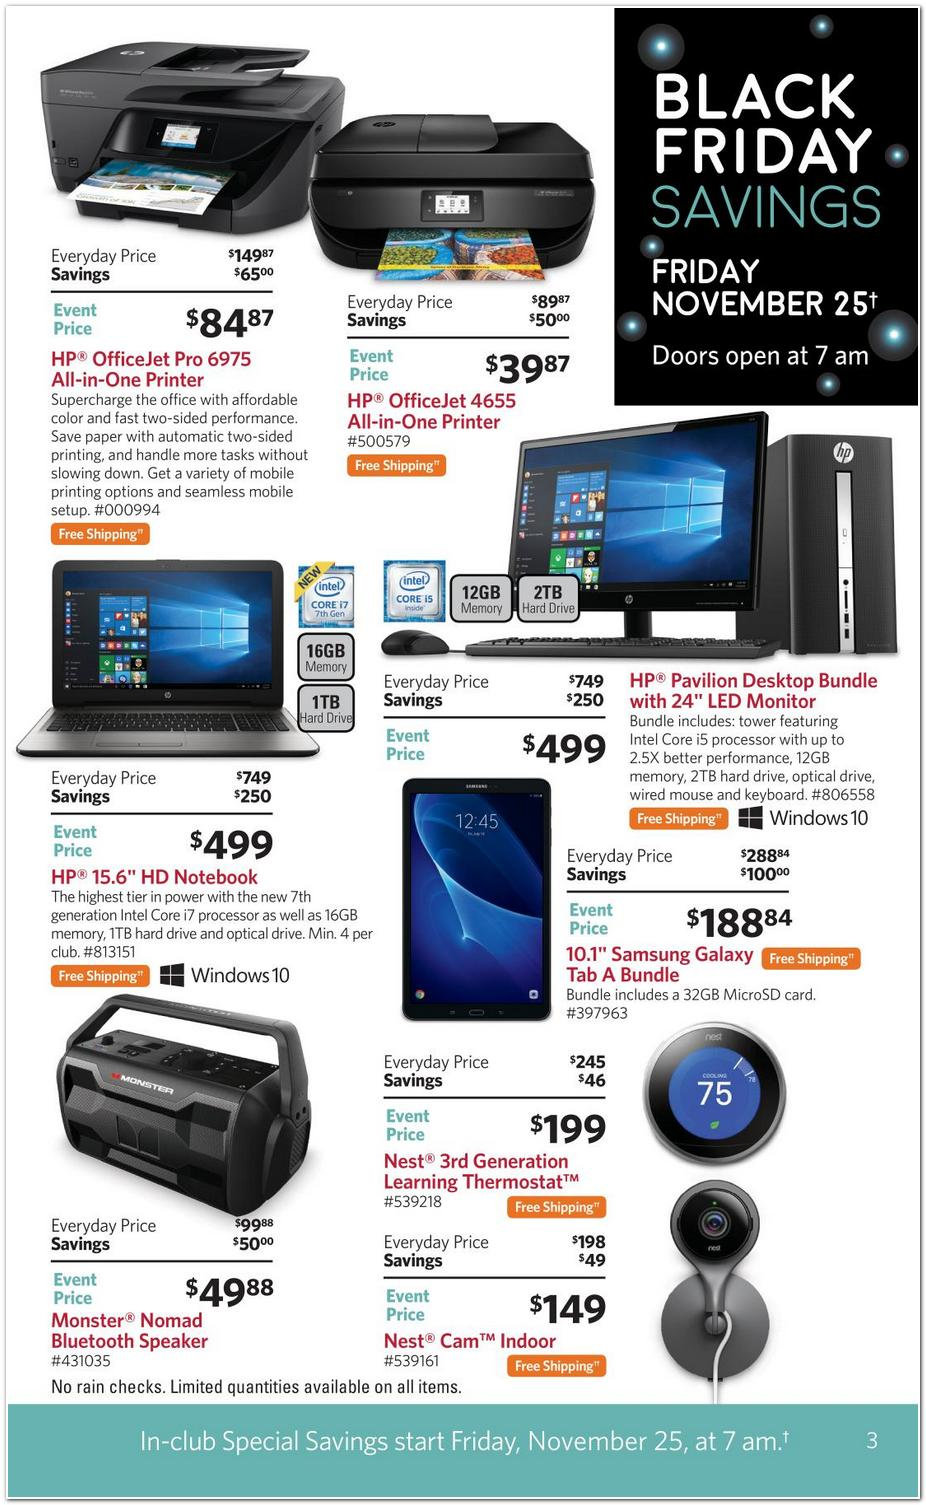 sams-club-black-friday-2016-ad-scan-p-3